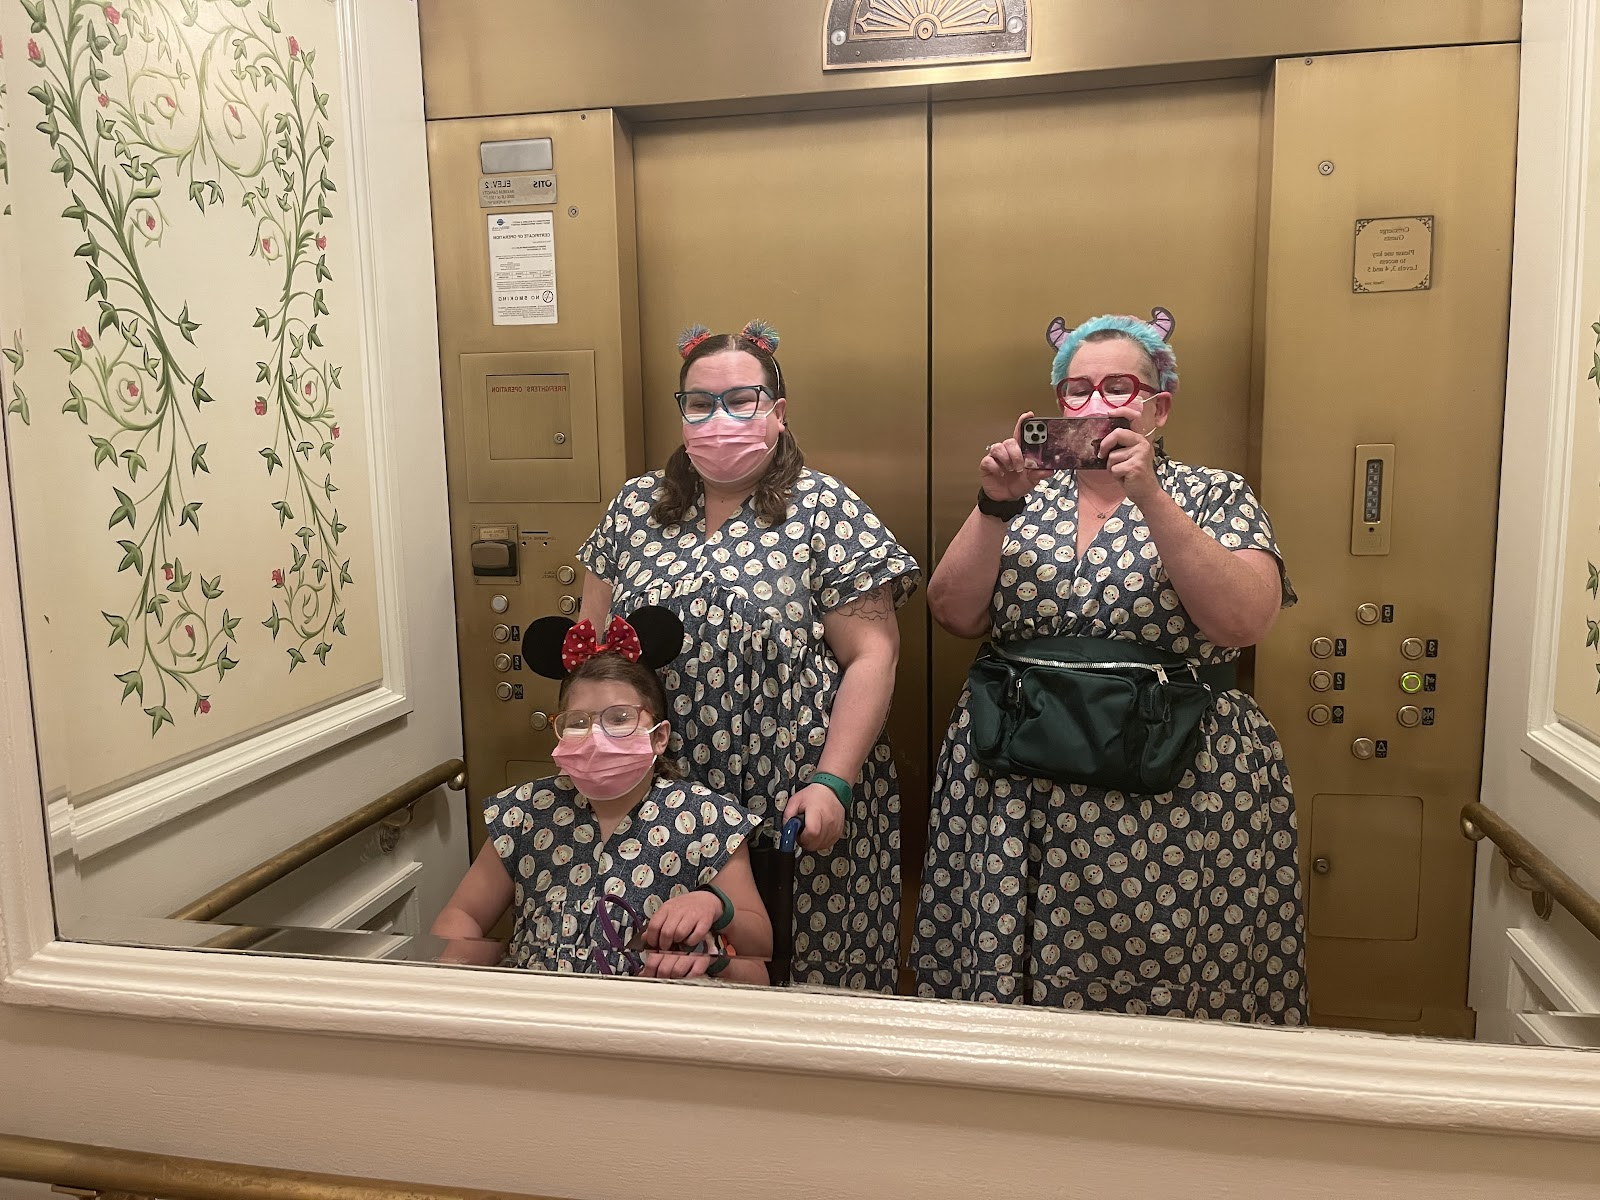 Three people, two women and a girl, in an elevator taking a photo.  They are all wearing dresses made from the same material.